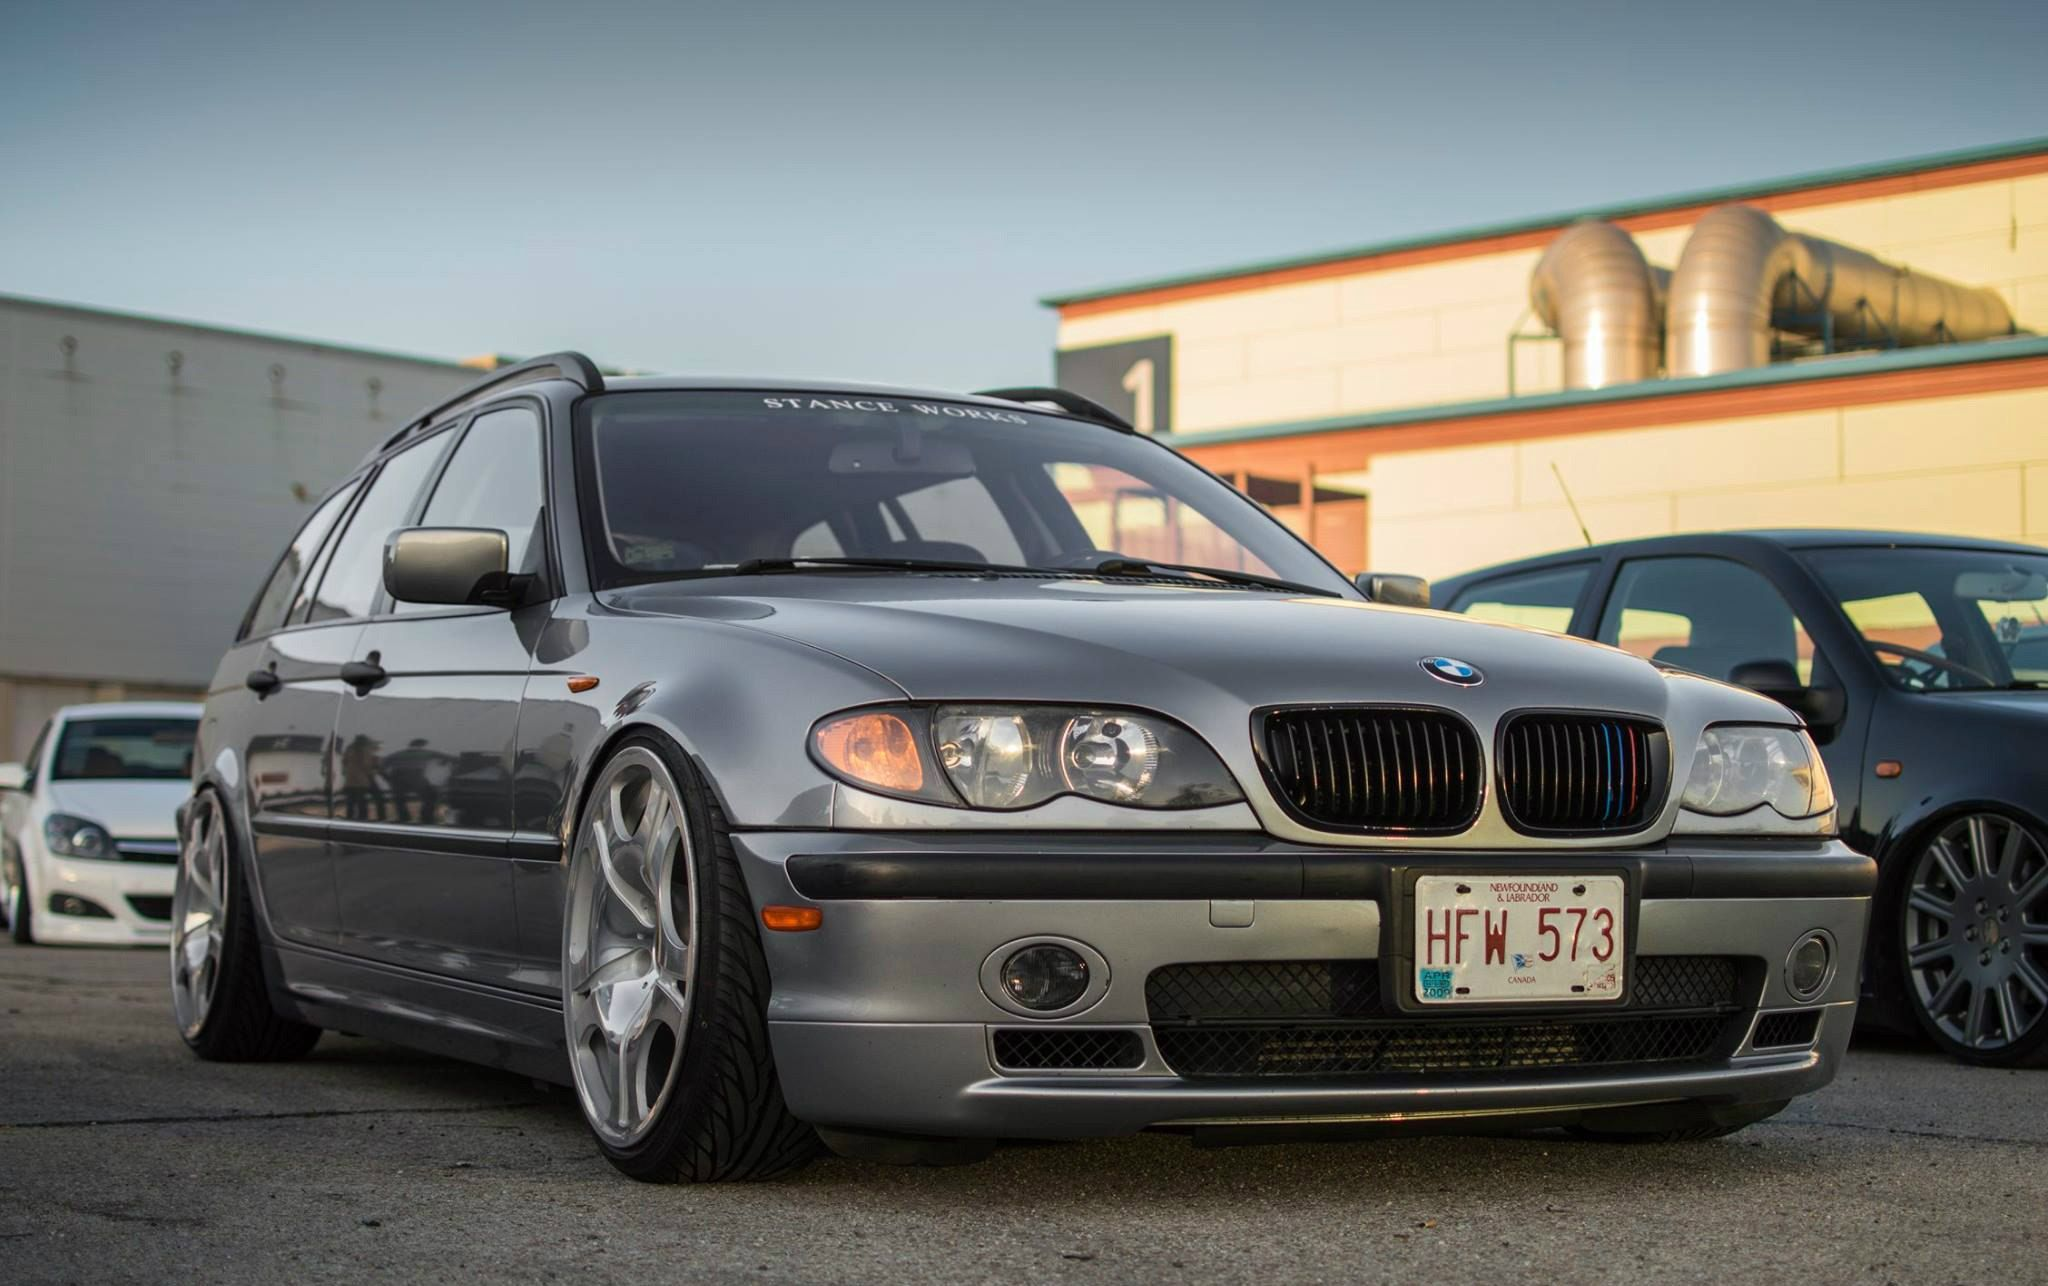 bmw e46 touring bmw pinterest bmw e46 bmw and bmw touring. Black Bedroom Furniture Sets. Home Design Ideas